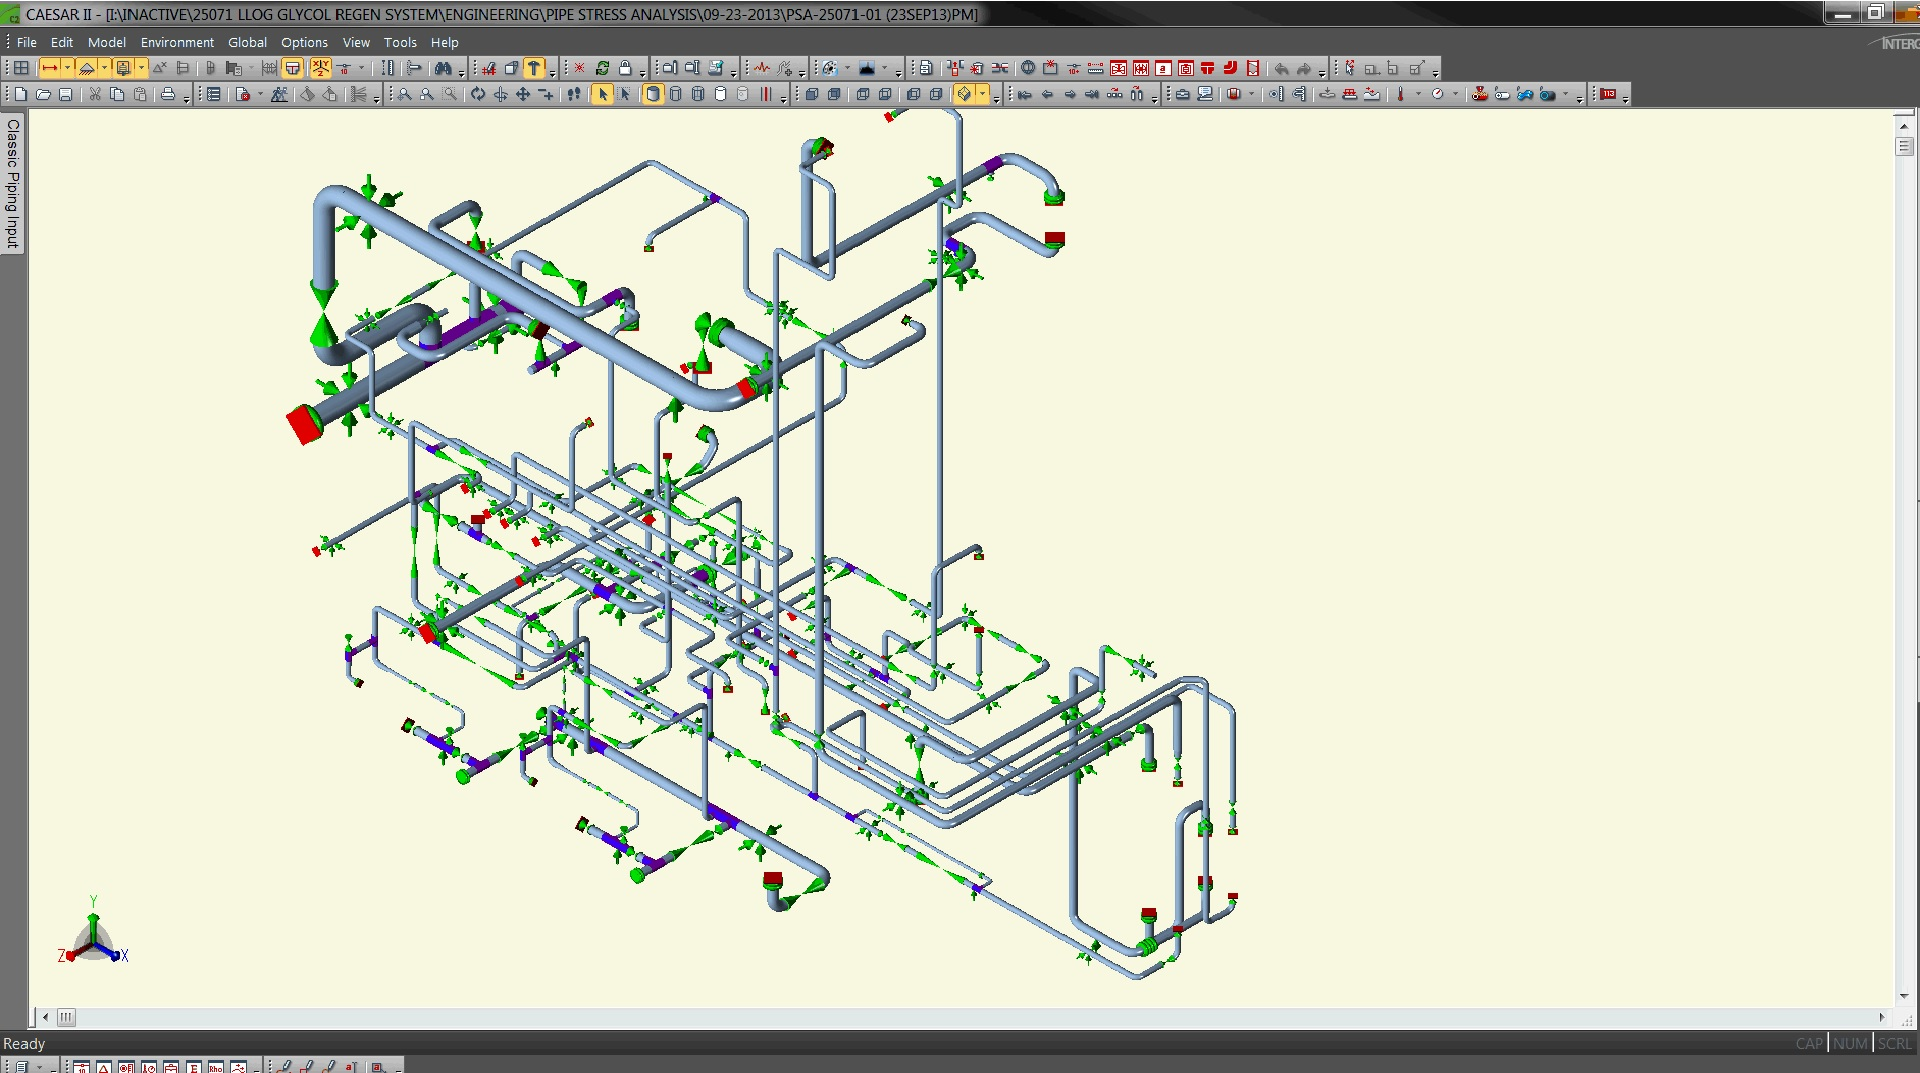 Offshore Design Engineering Limited